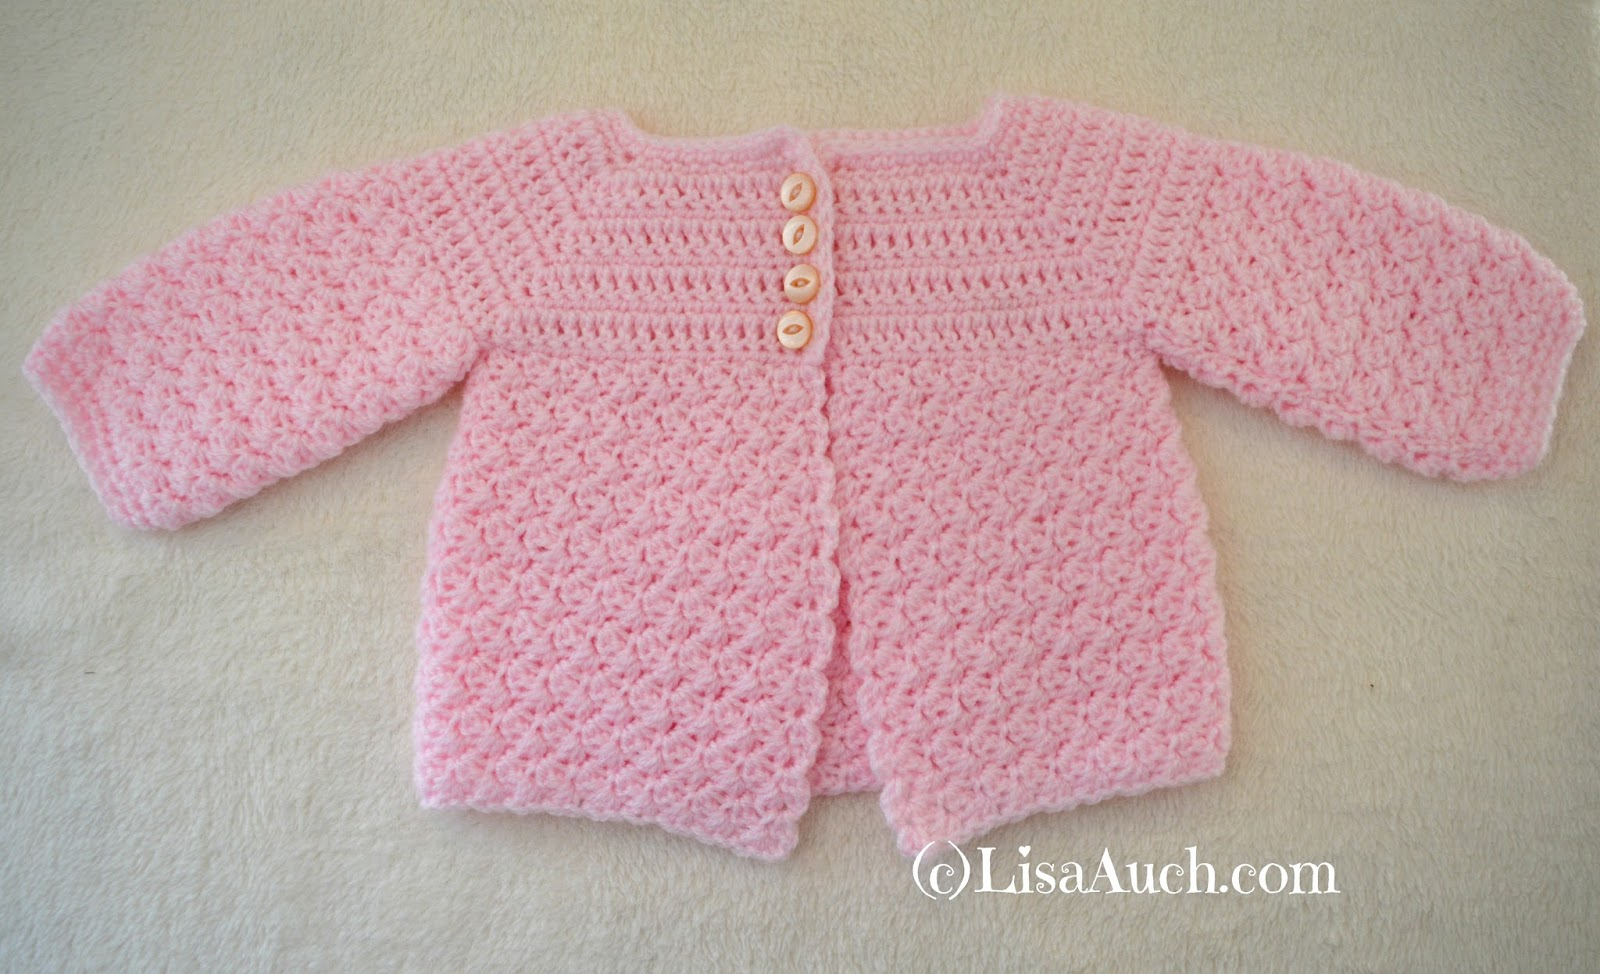 4a3b610bbaeb Free Crochet Patterns and Designs by LisaAuch  Crochet Baby Cardigan ...